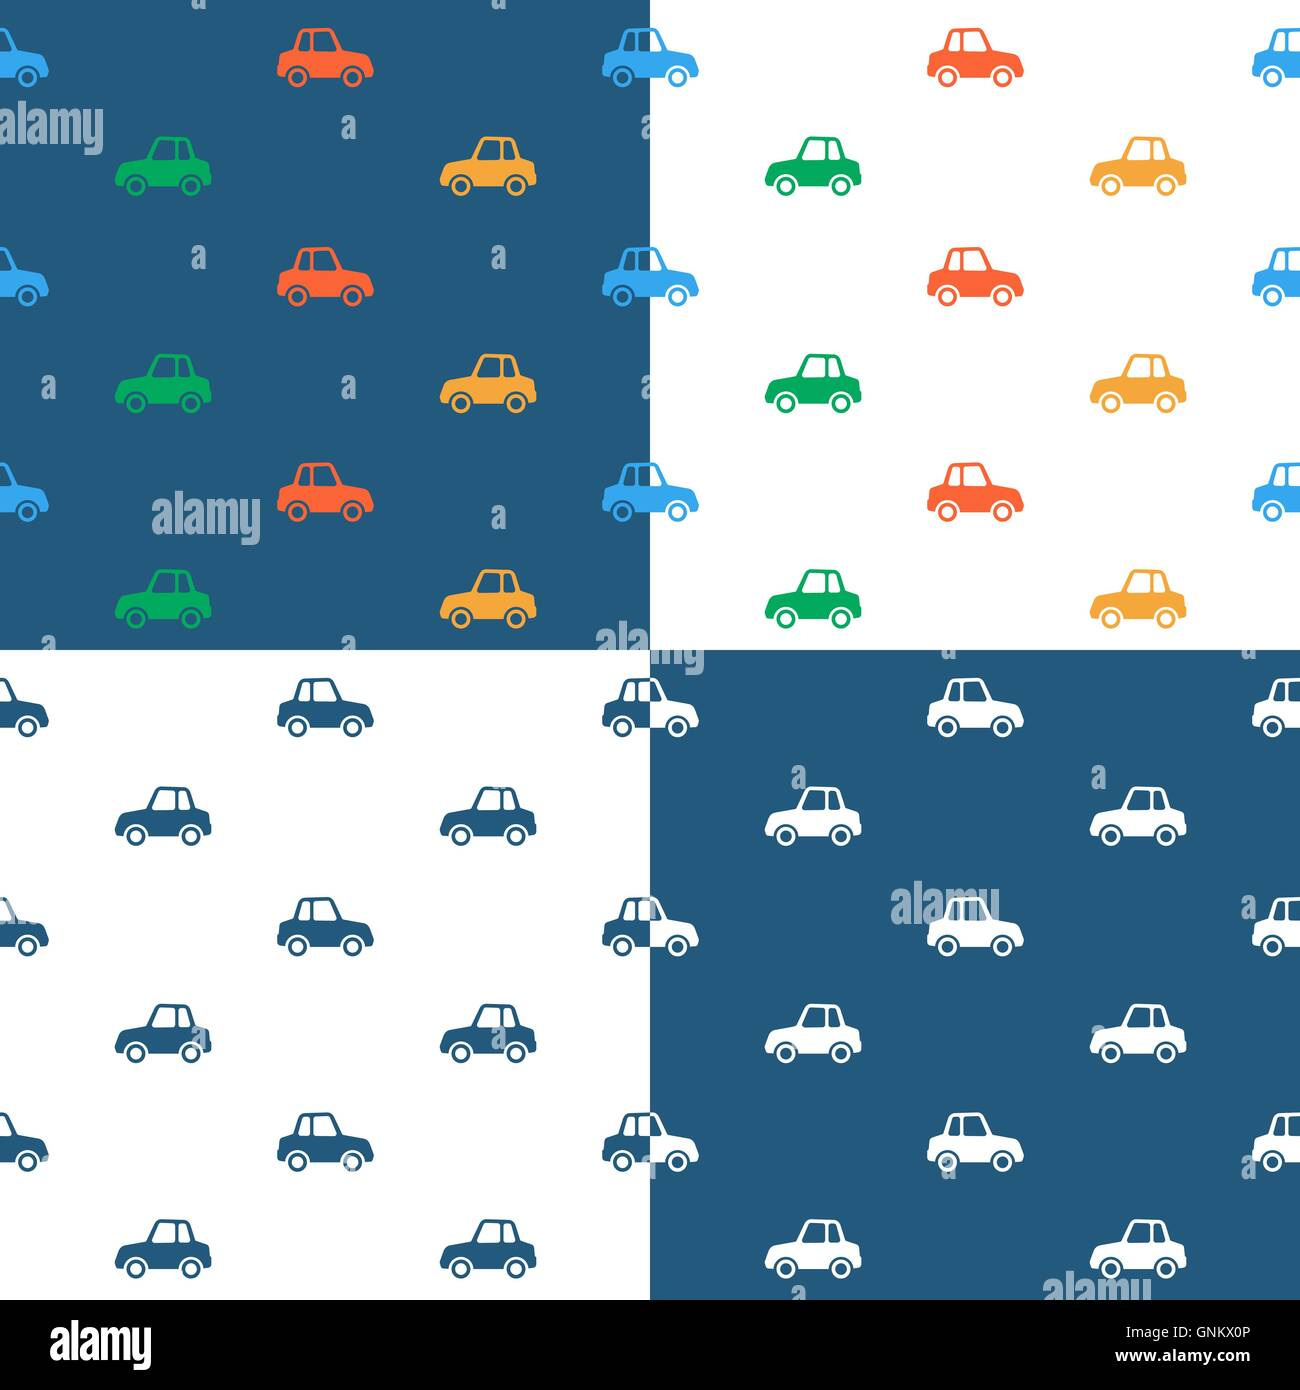 Vector image of seamless car pattern over colored background Stock Vector